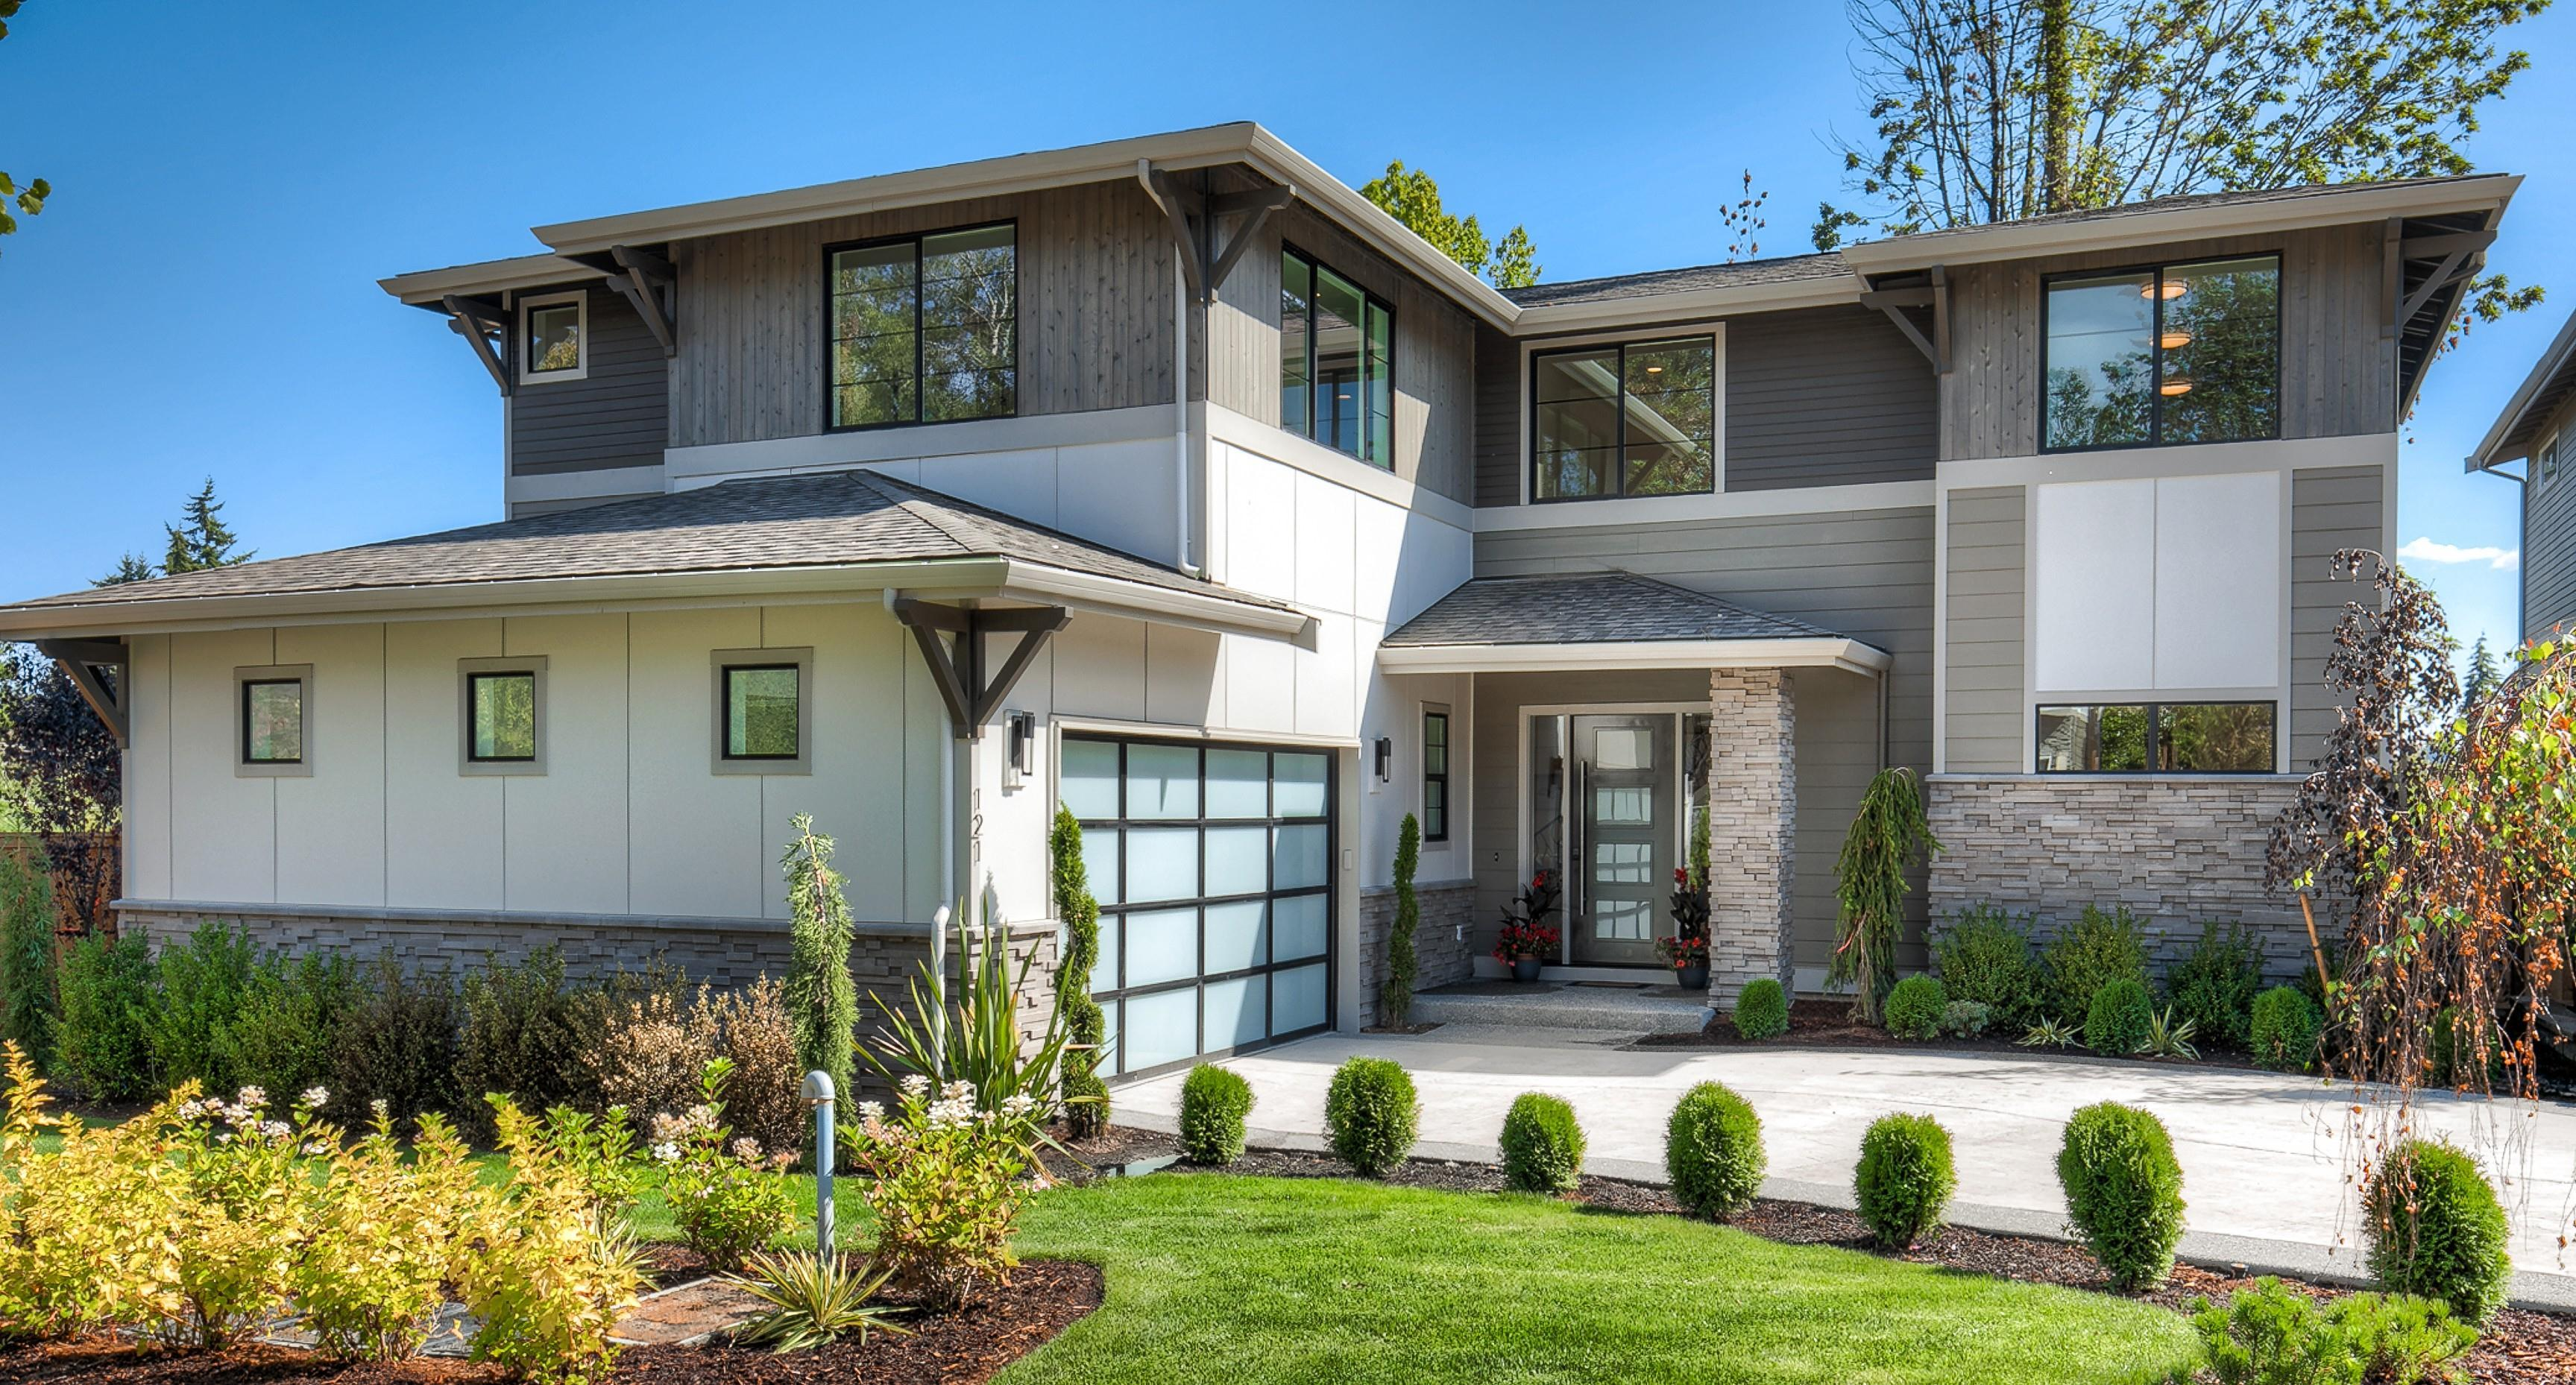 'Madison Grove' by Millennial Builders in Bremerton